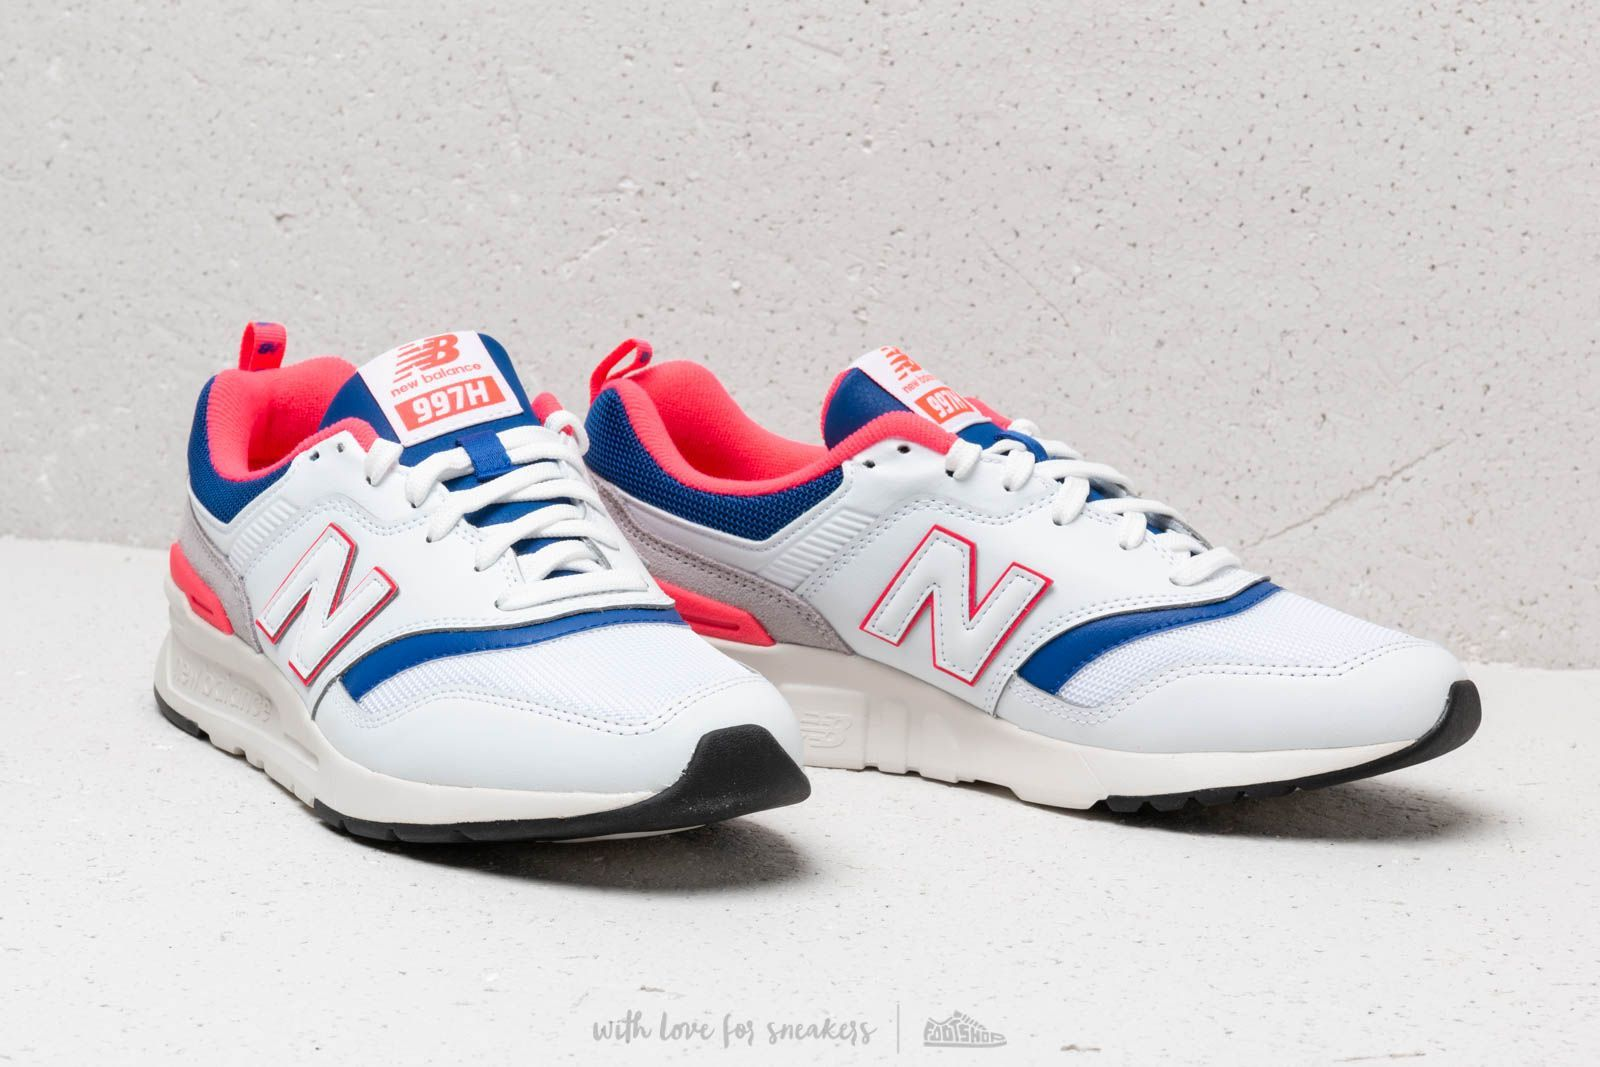 New Balance 997H | Shoes in 2019 | New balance, Shoes, Sneakers